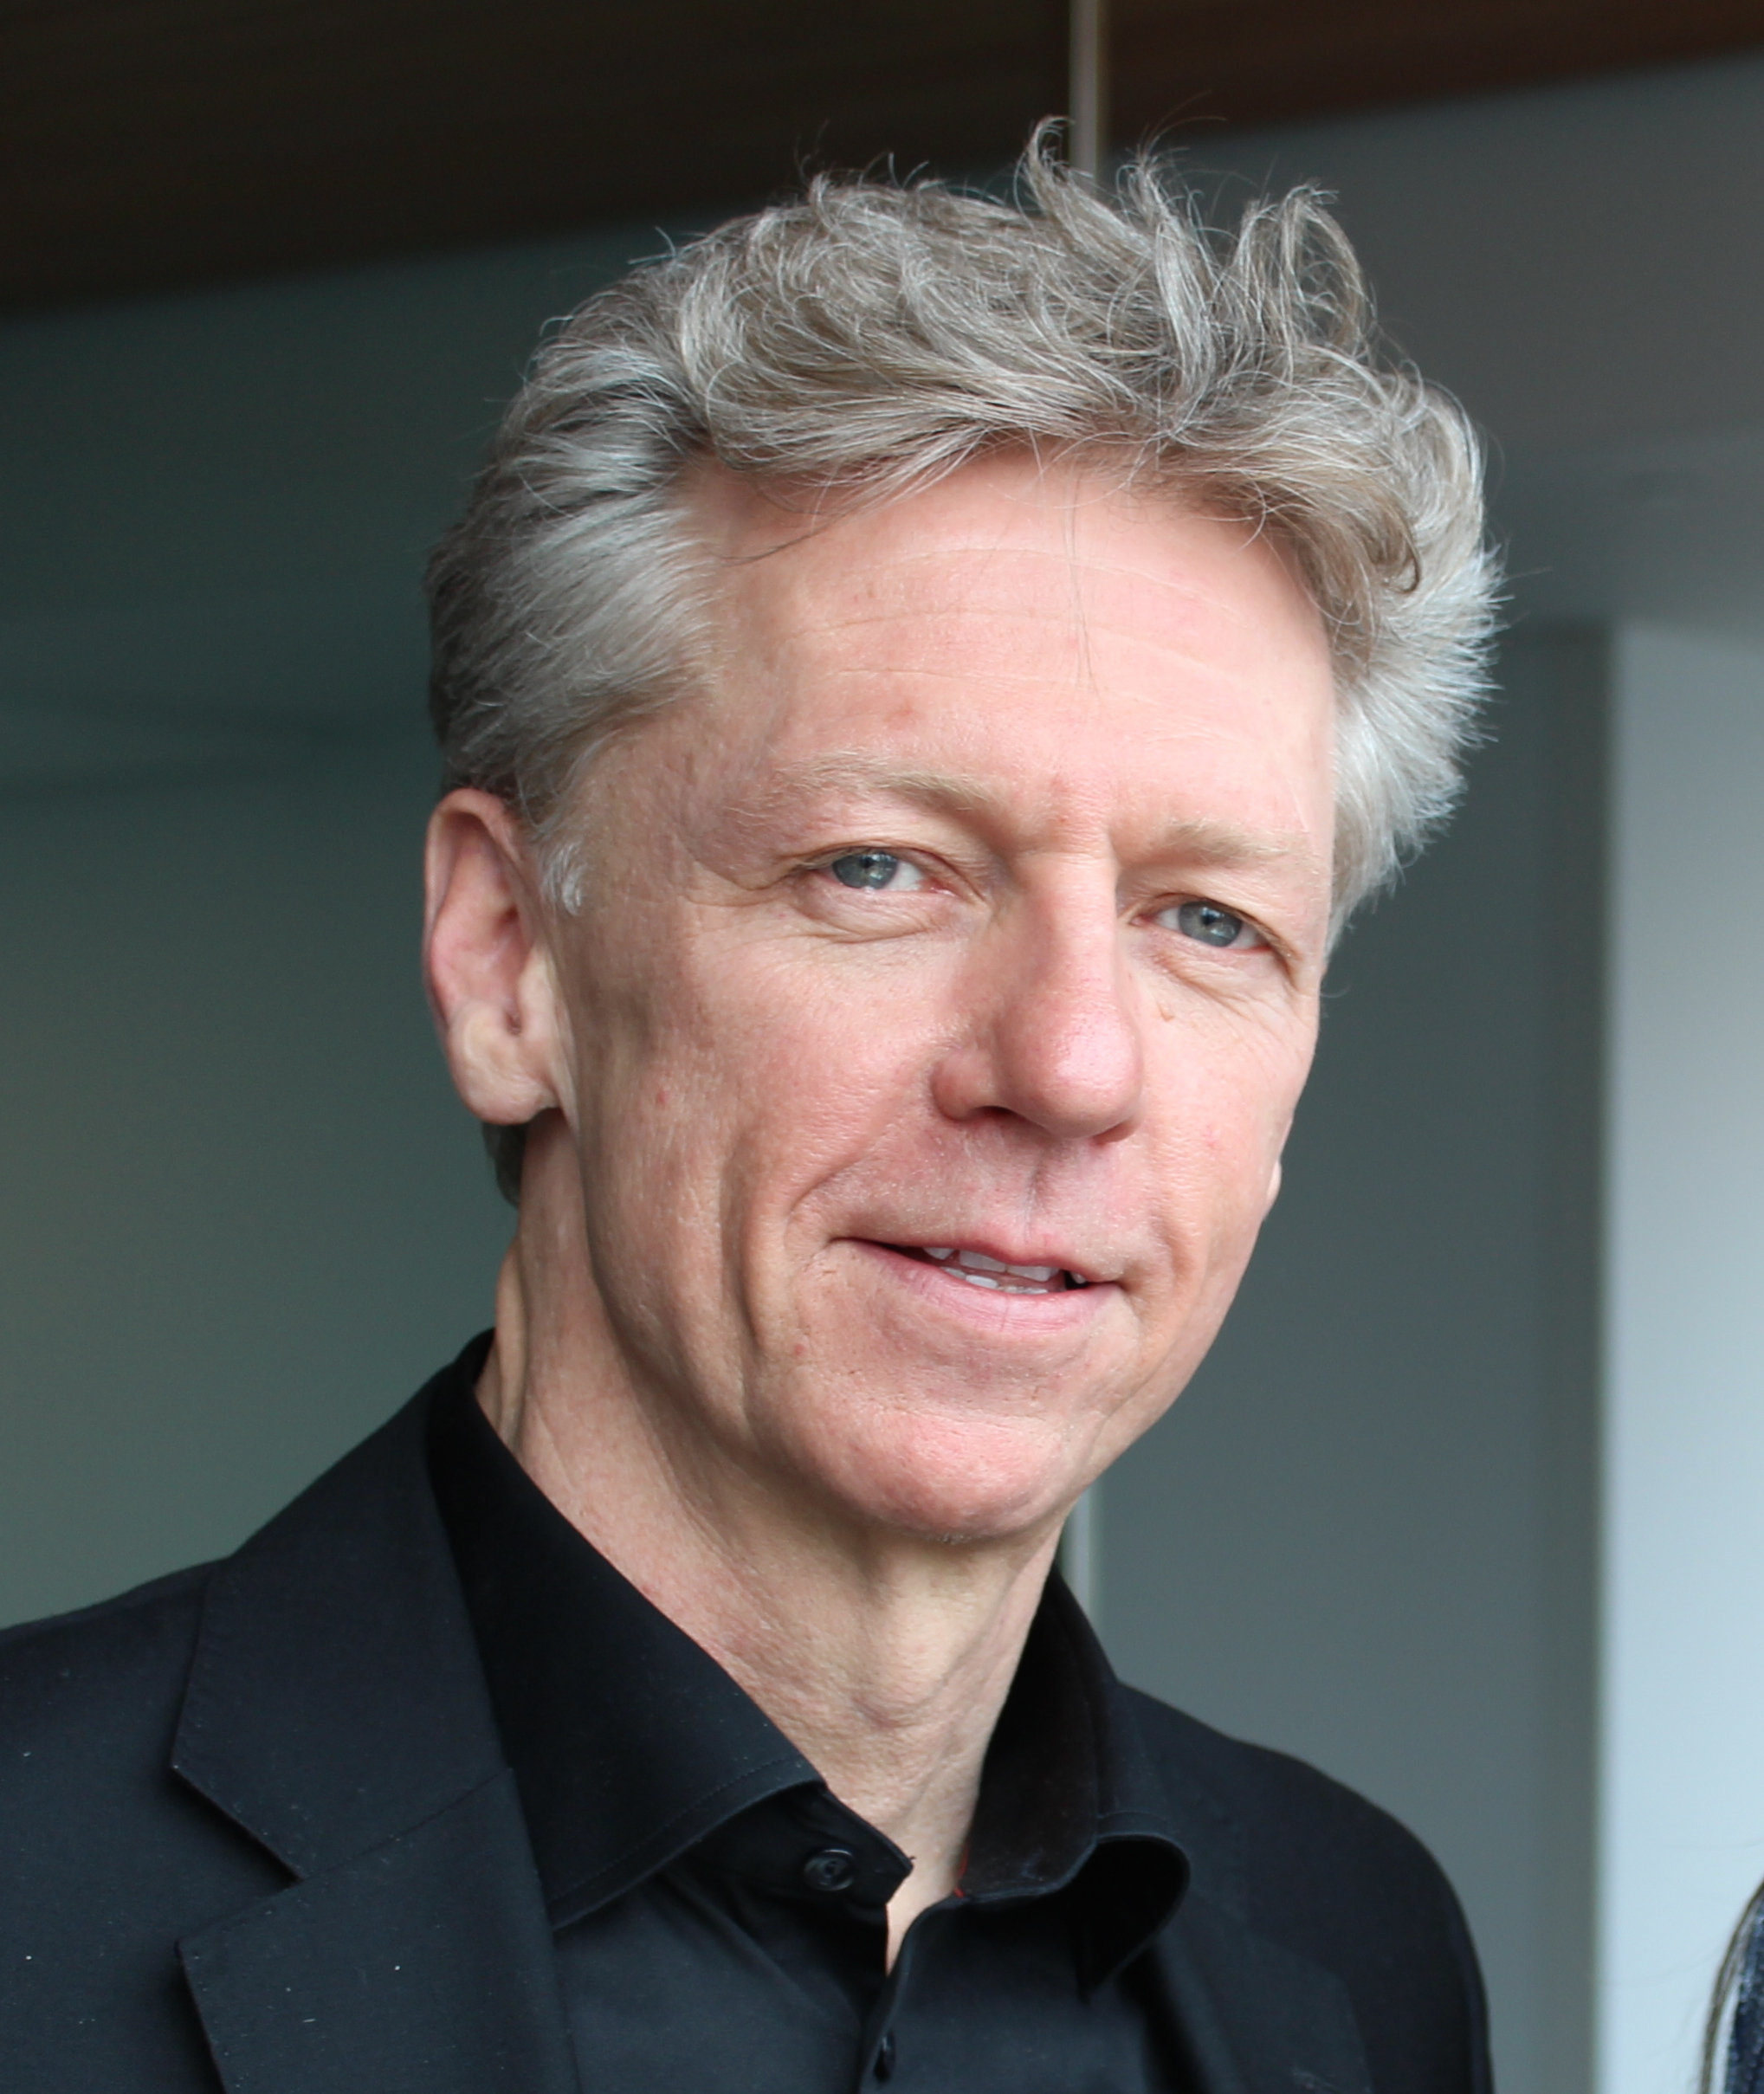 James Orbinski Wins the Royal College's Prestigious Humanitarian Award